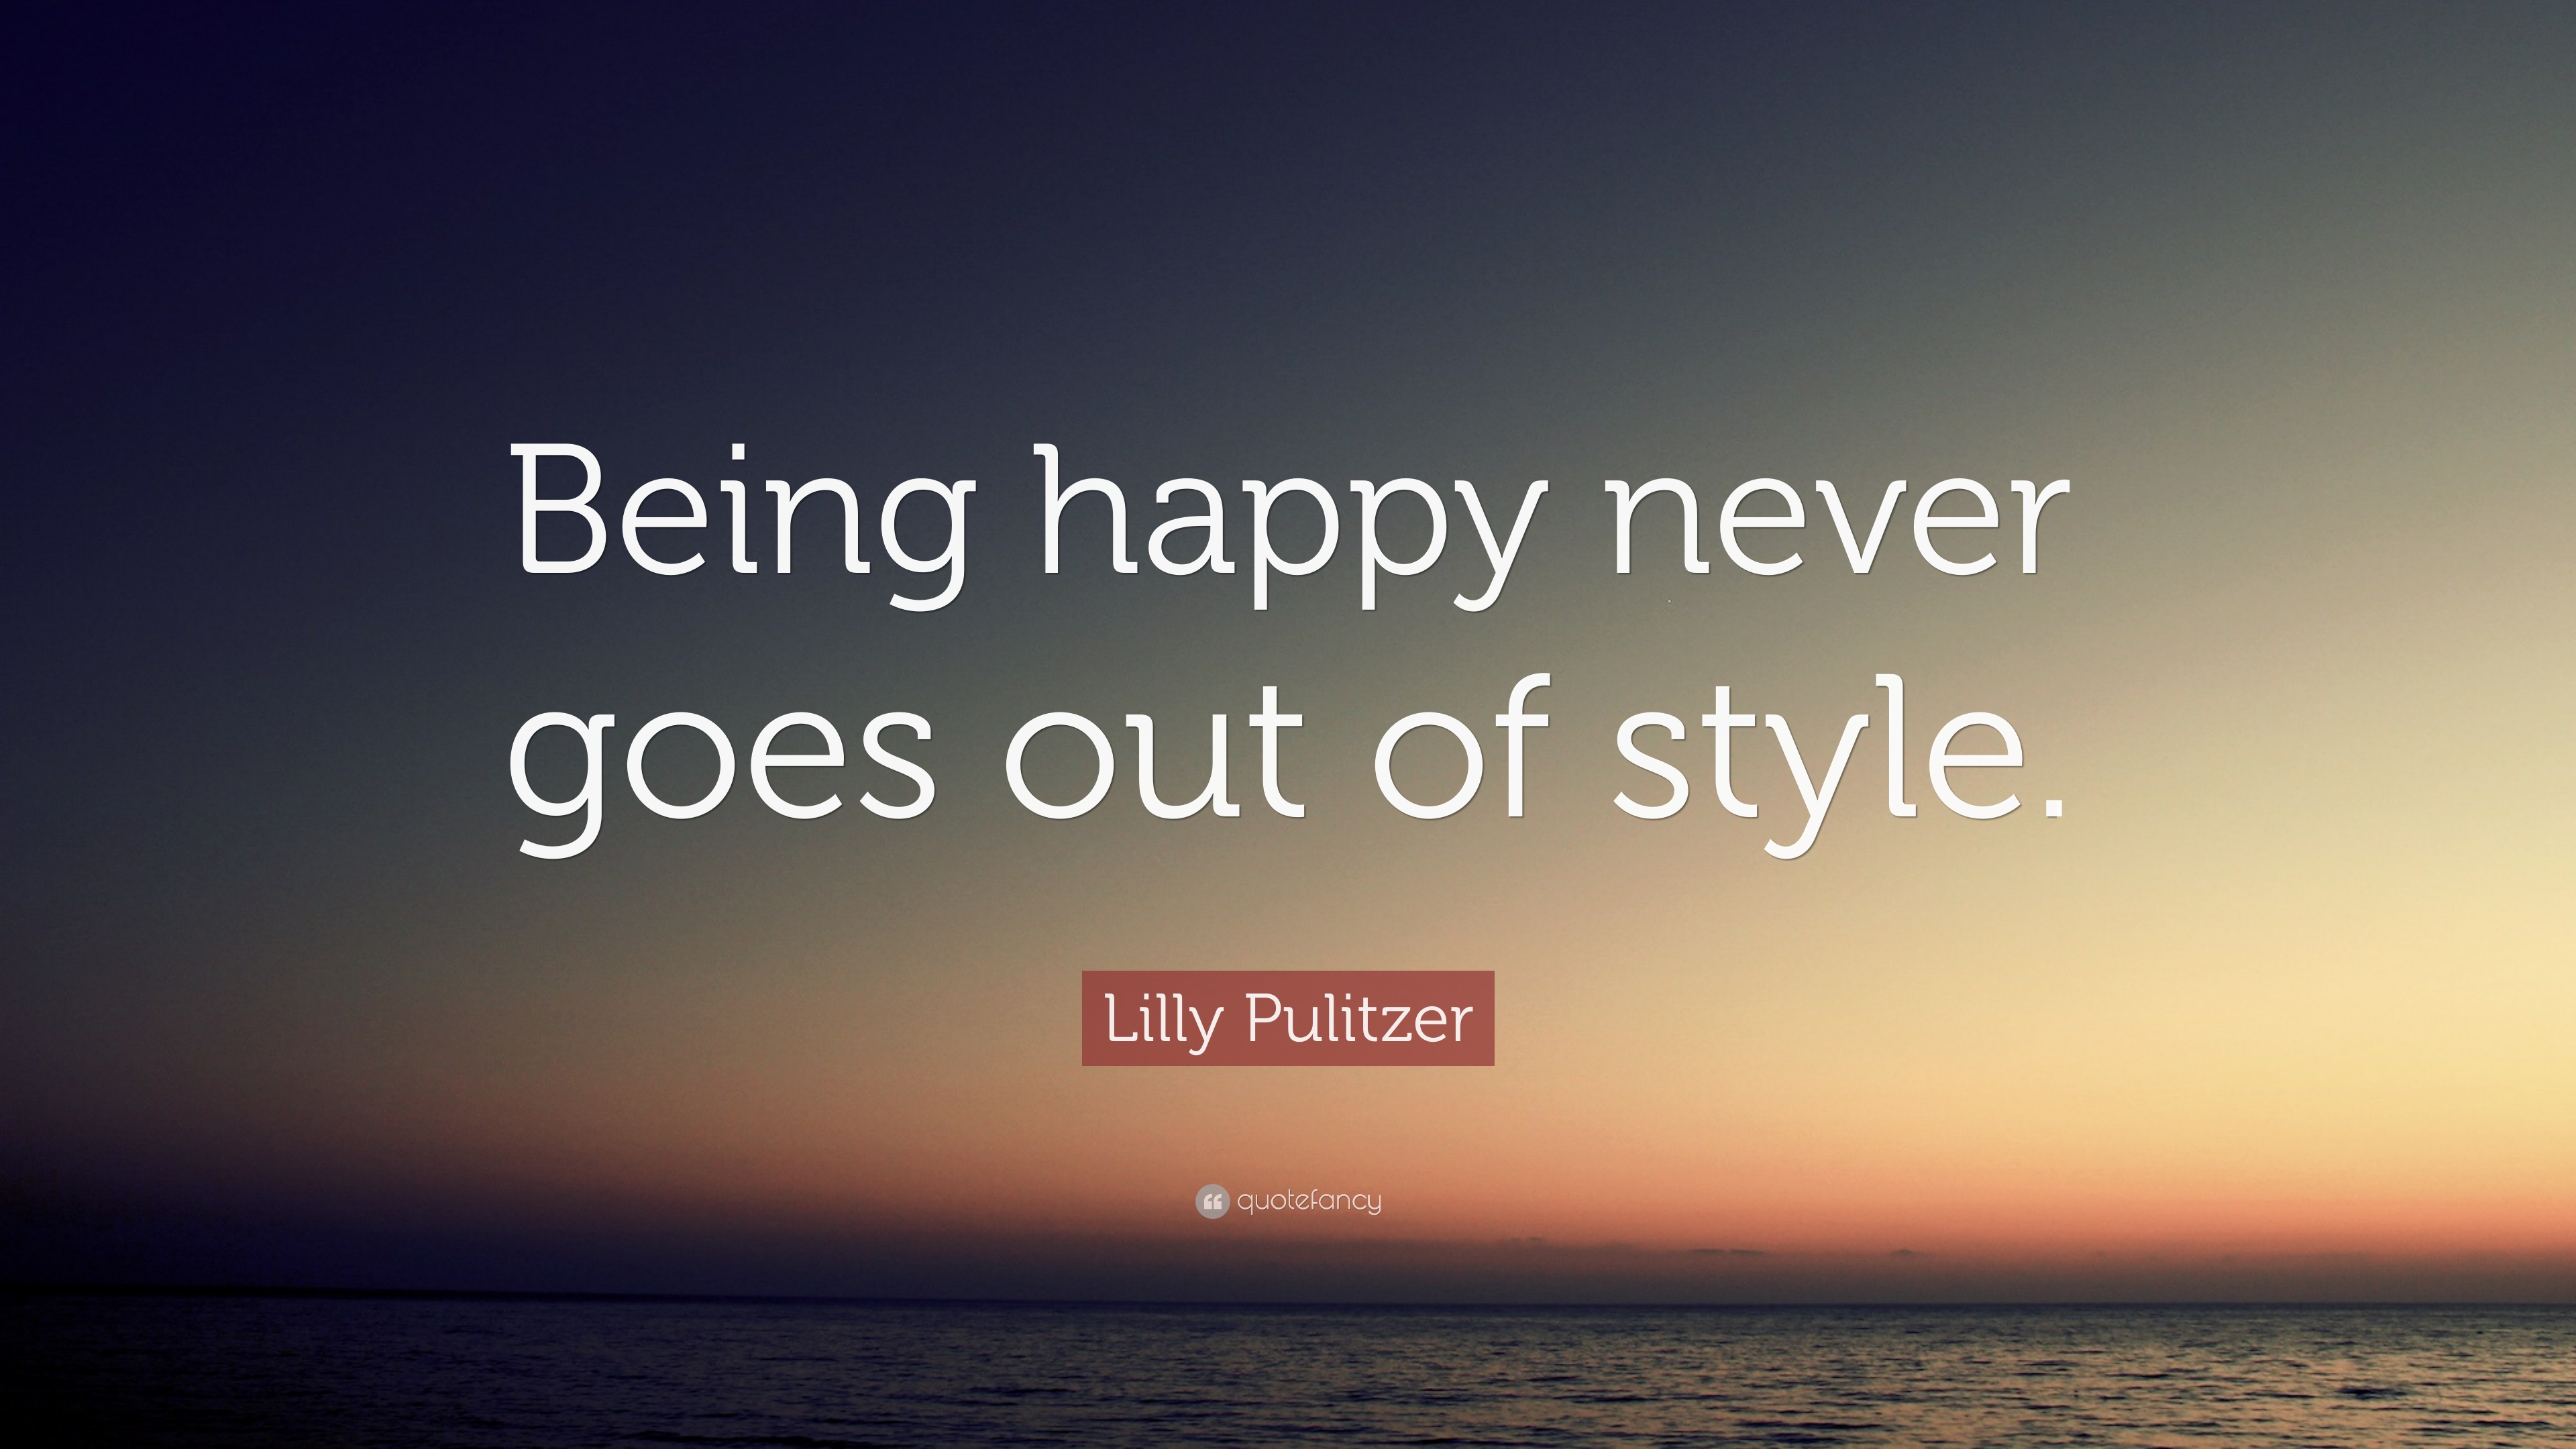 Lilly Pulitzer Quotes Wallpaper Being Happy Quotes 40 Wallpapers Quotefancy